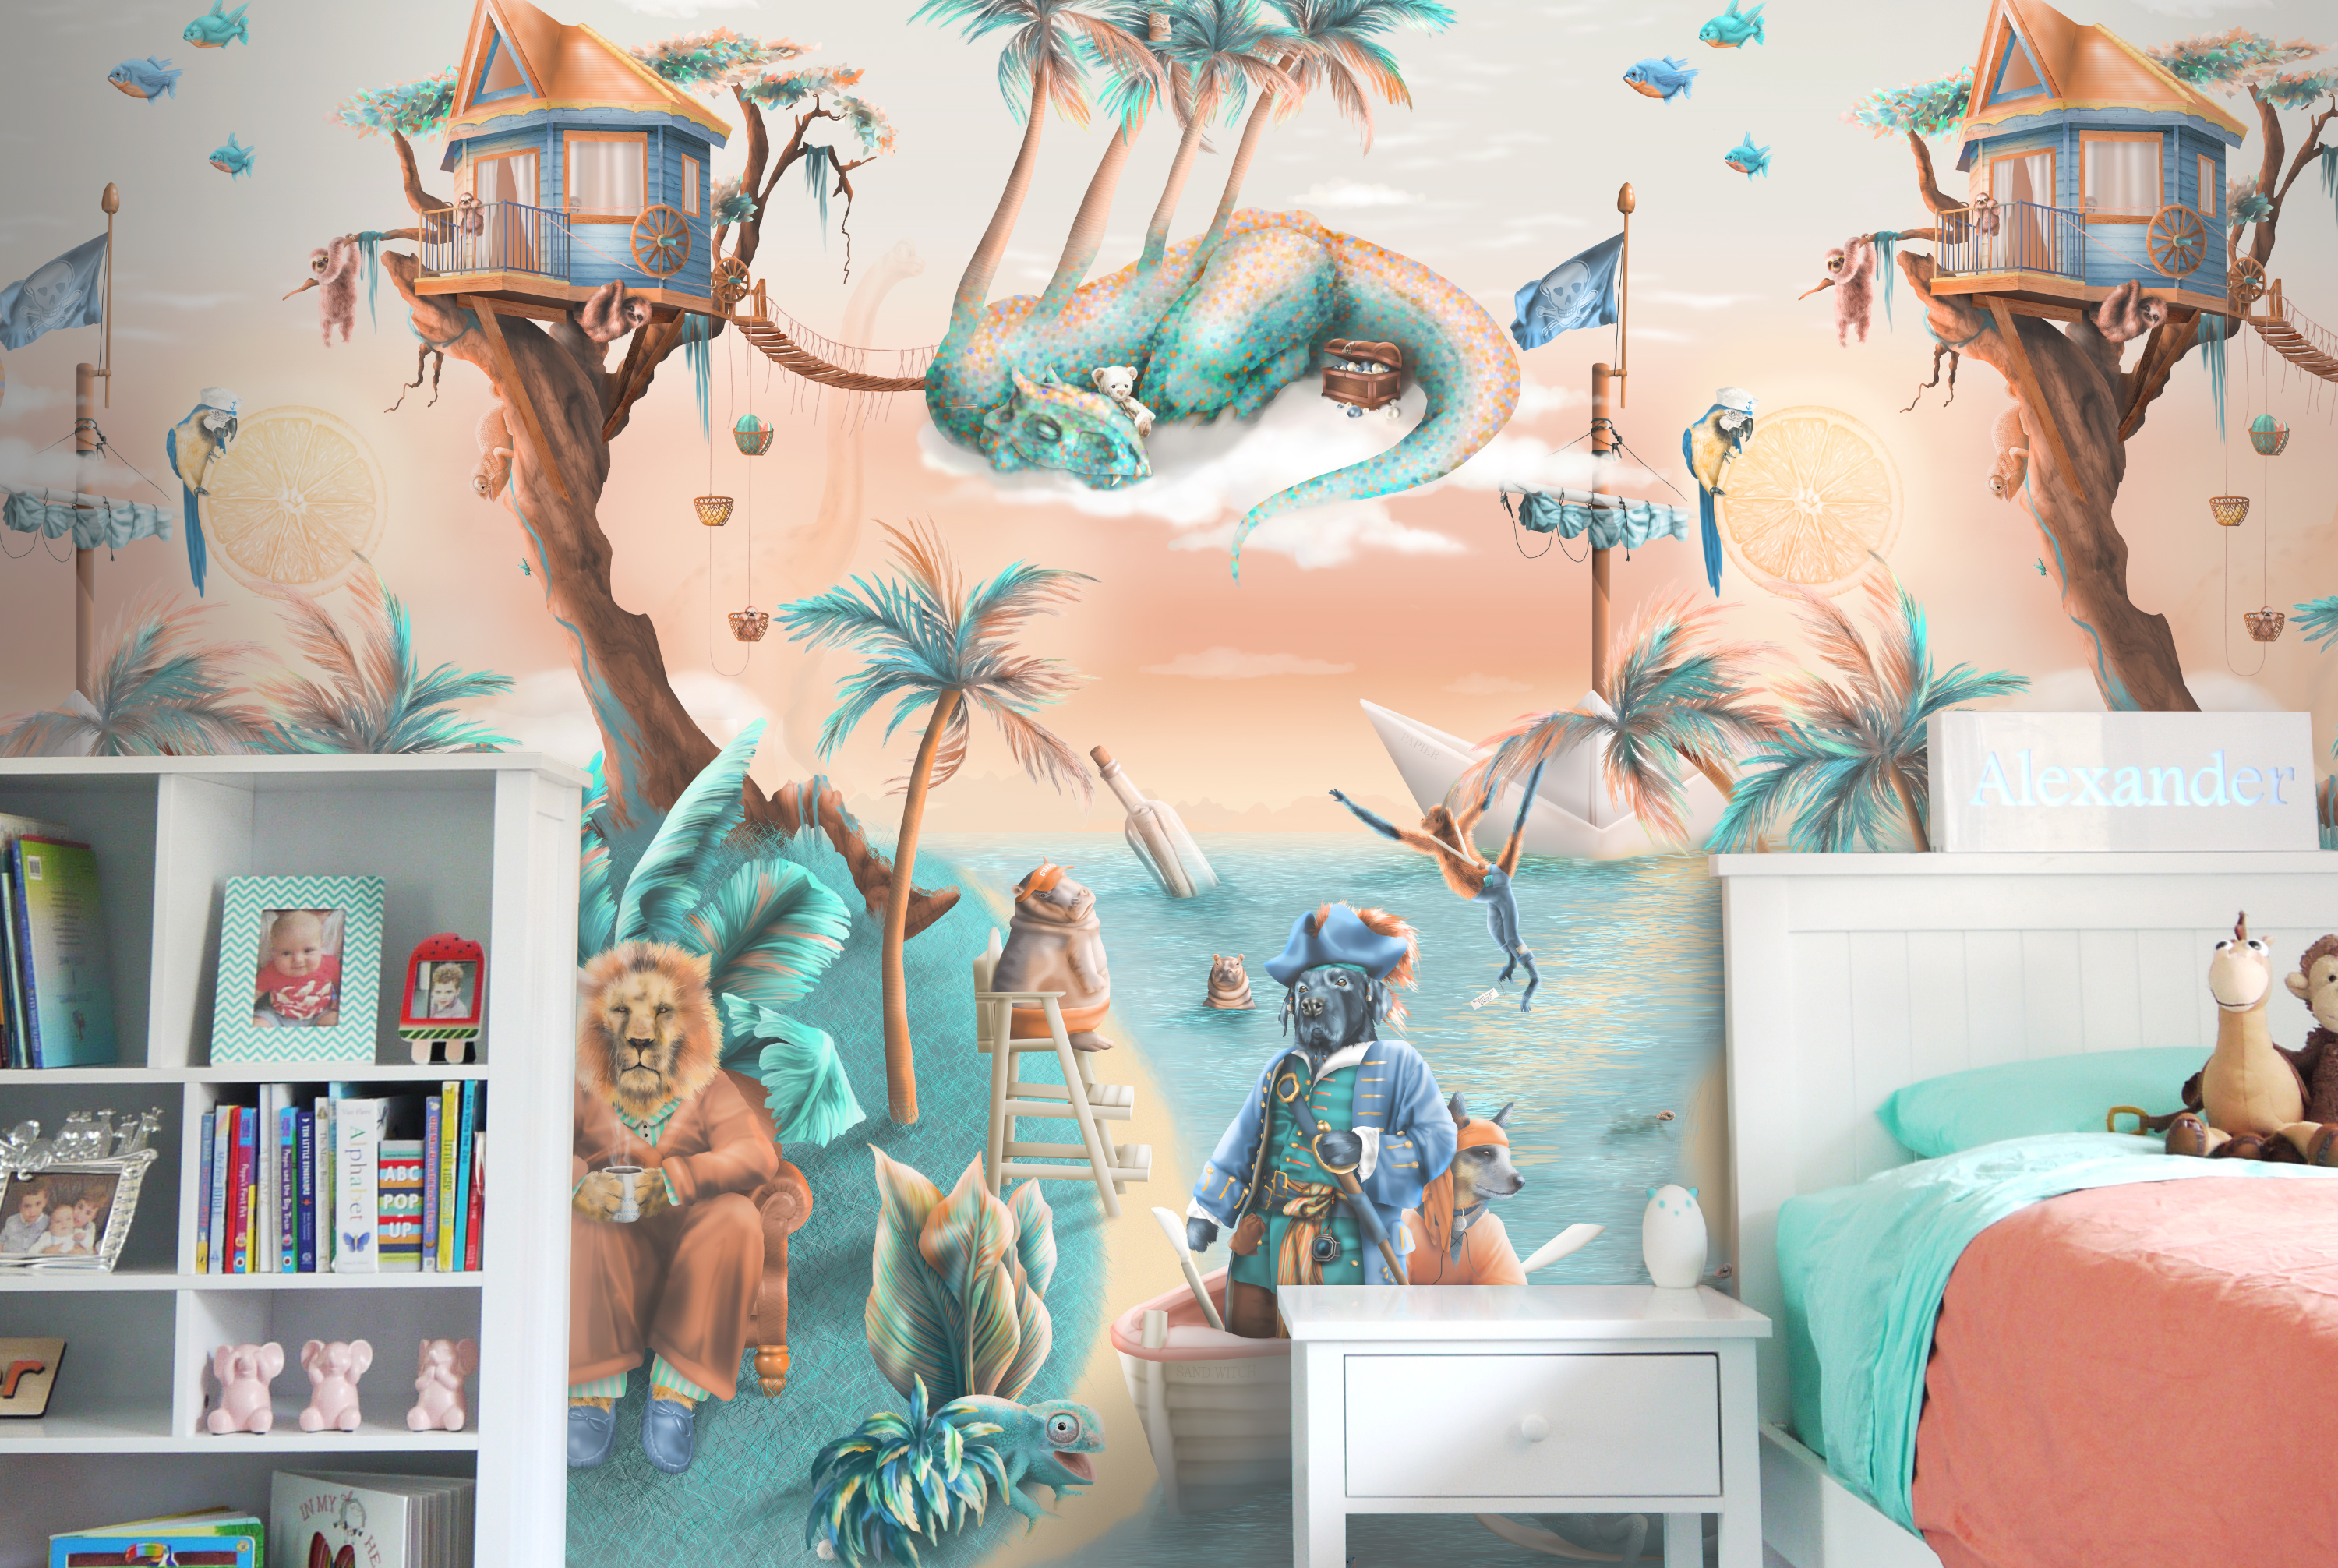 awesome Kids jungle explorer wallpaper and mural from australia. Features jungle animals in a tropical island design. Lions, hippo, dinosaurs, sloths and pirates! In colours of orange, beige, turquoise, aqua. brown, blue